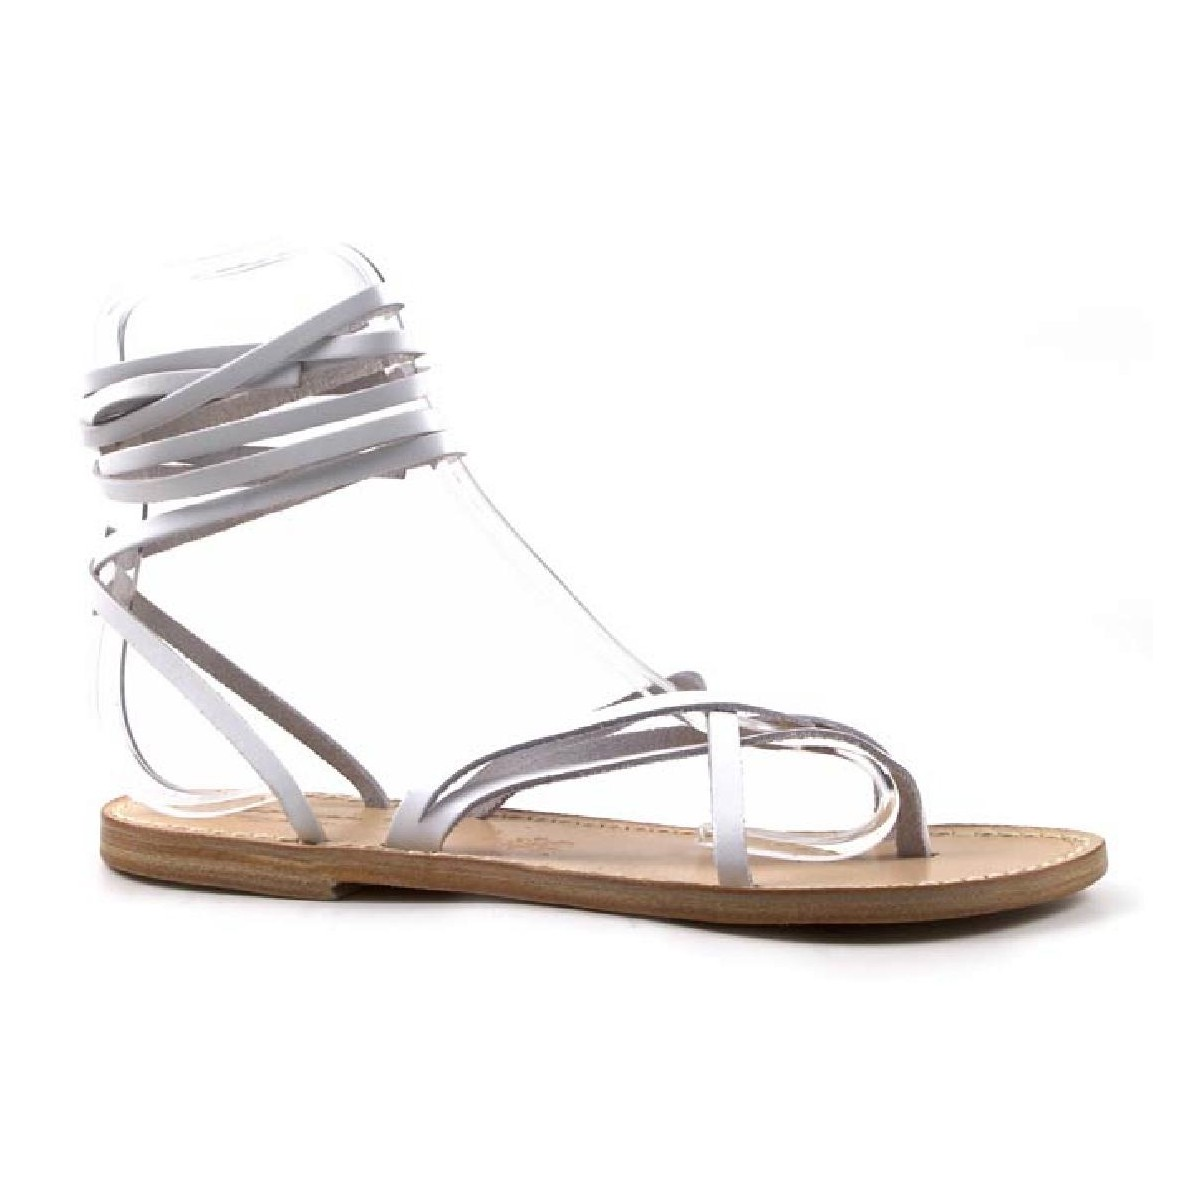 White sandals